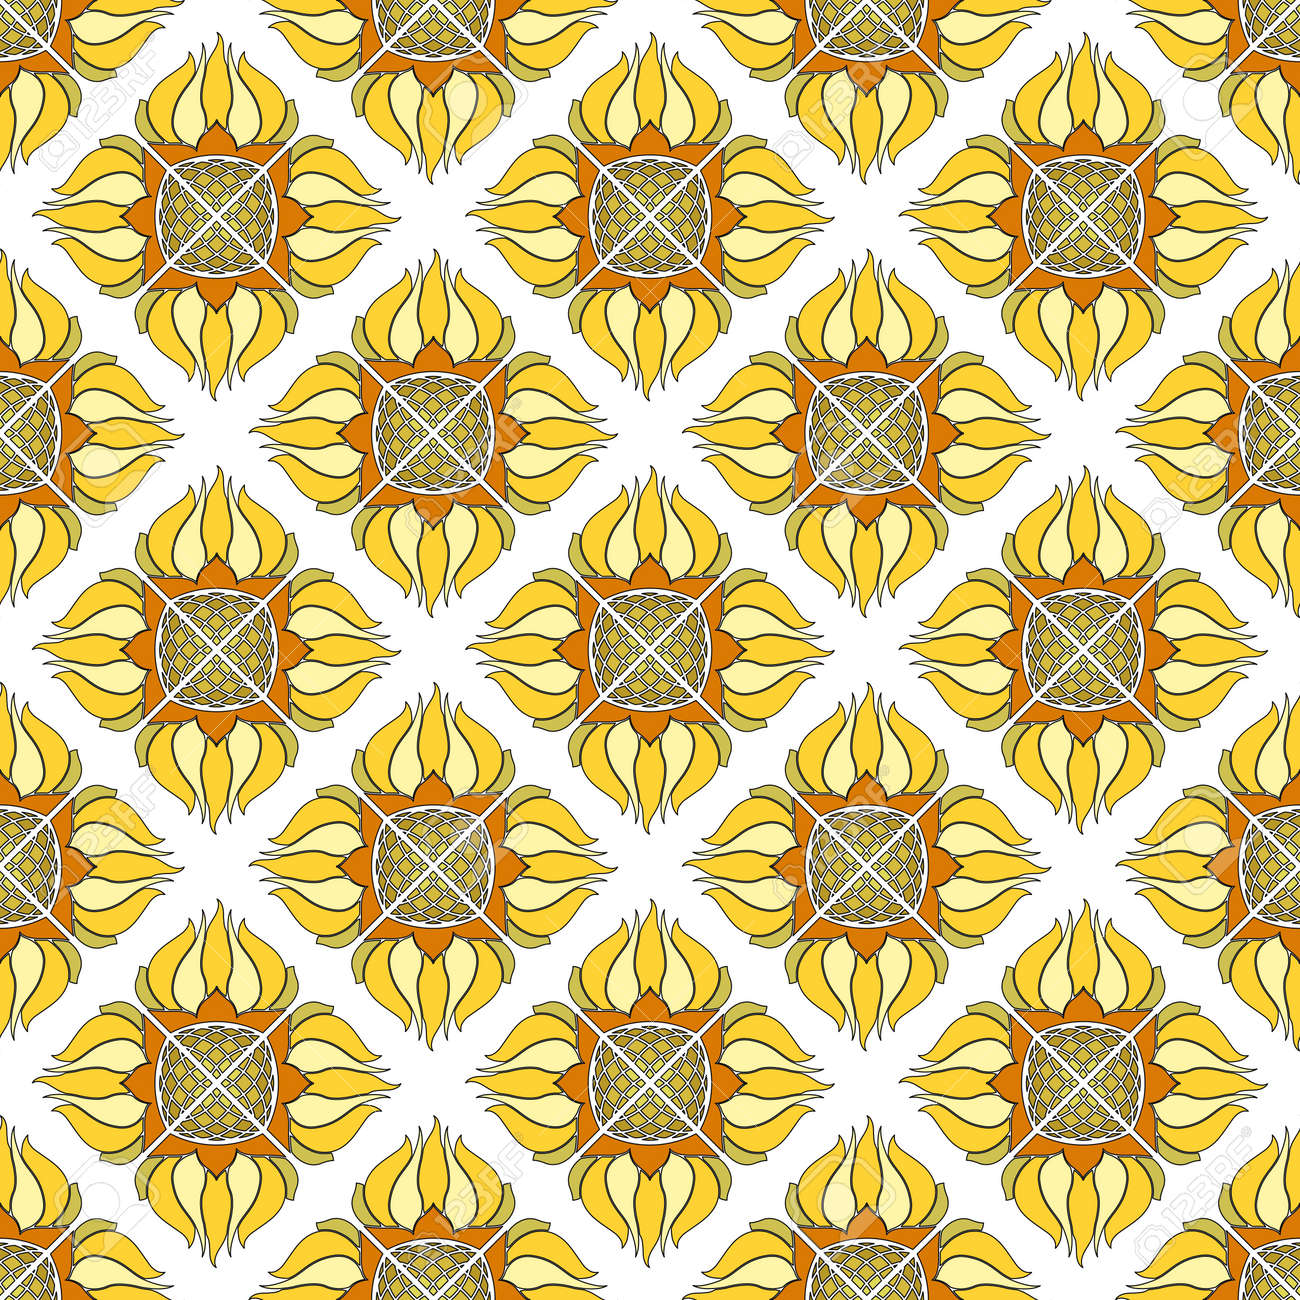 Seamless floral pattern of abstract sunflowers. Yellow with orange flowers on a white background. Great for decorating fabrics, textiles, gift wrapping, printed matter, interiors, advertising. - 172047270